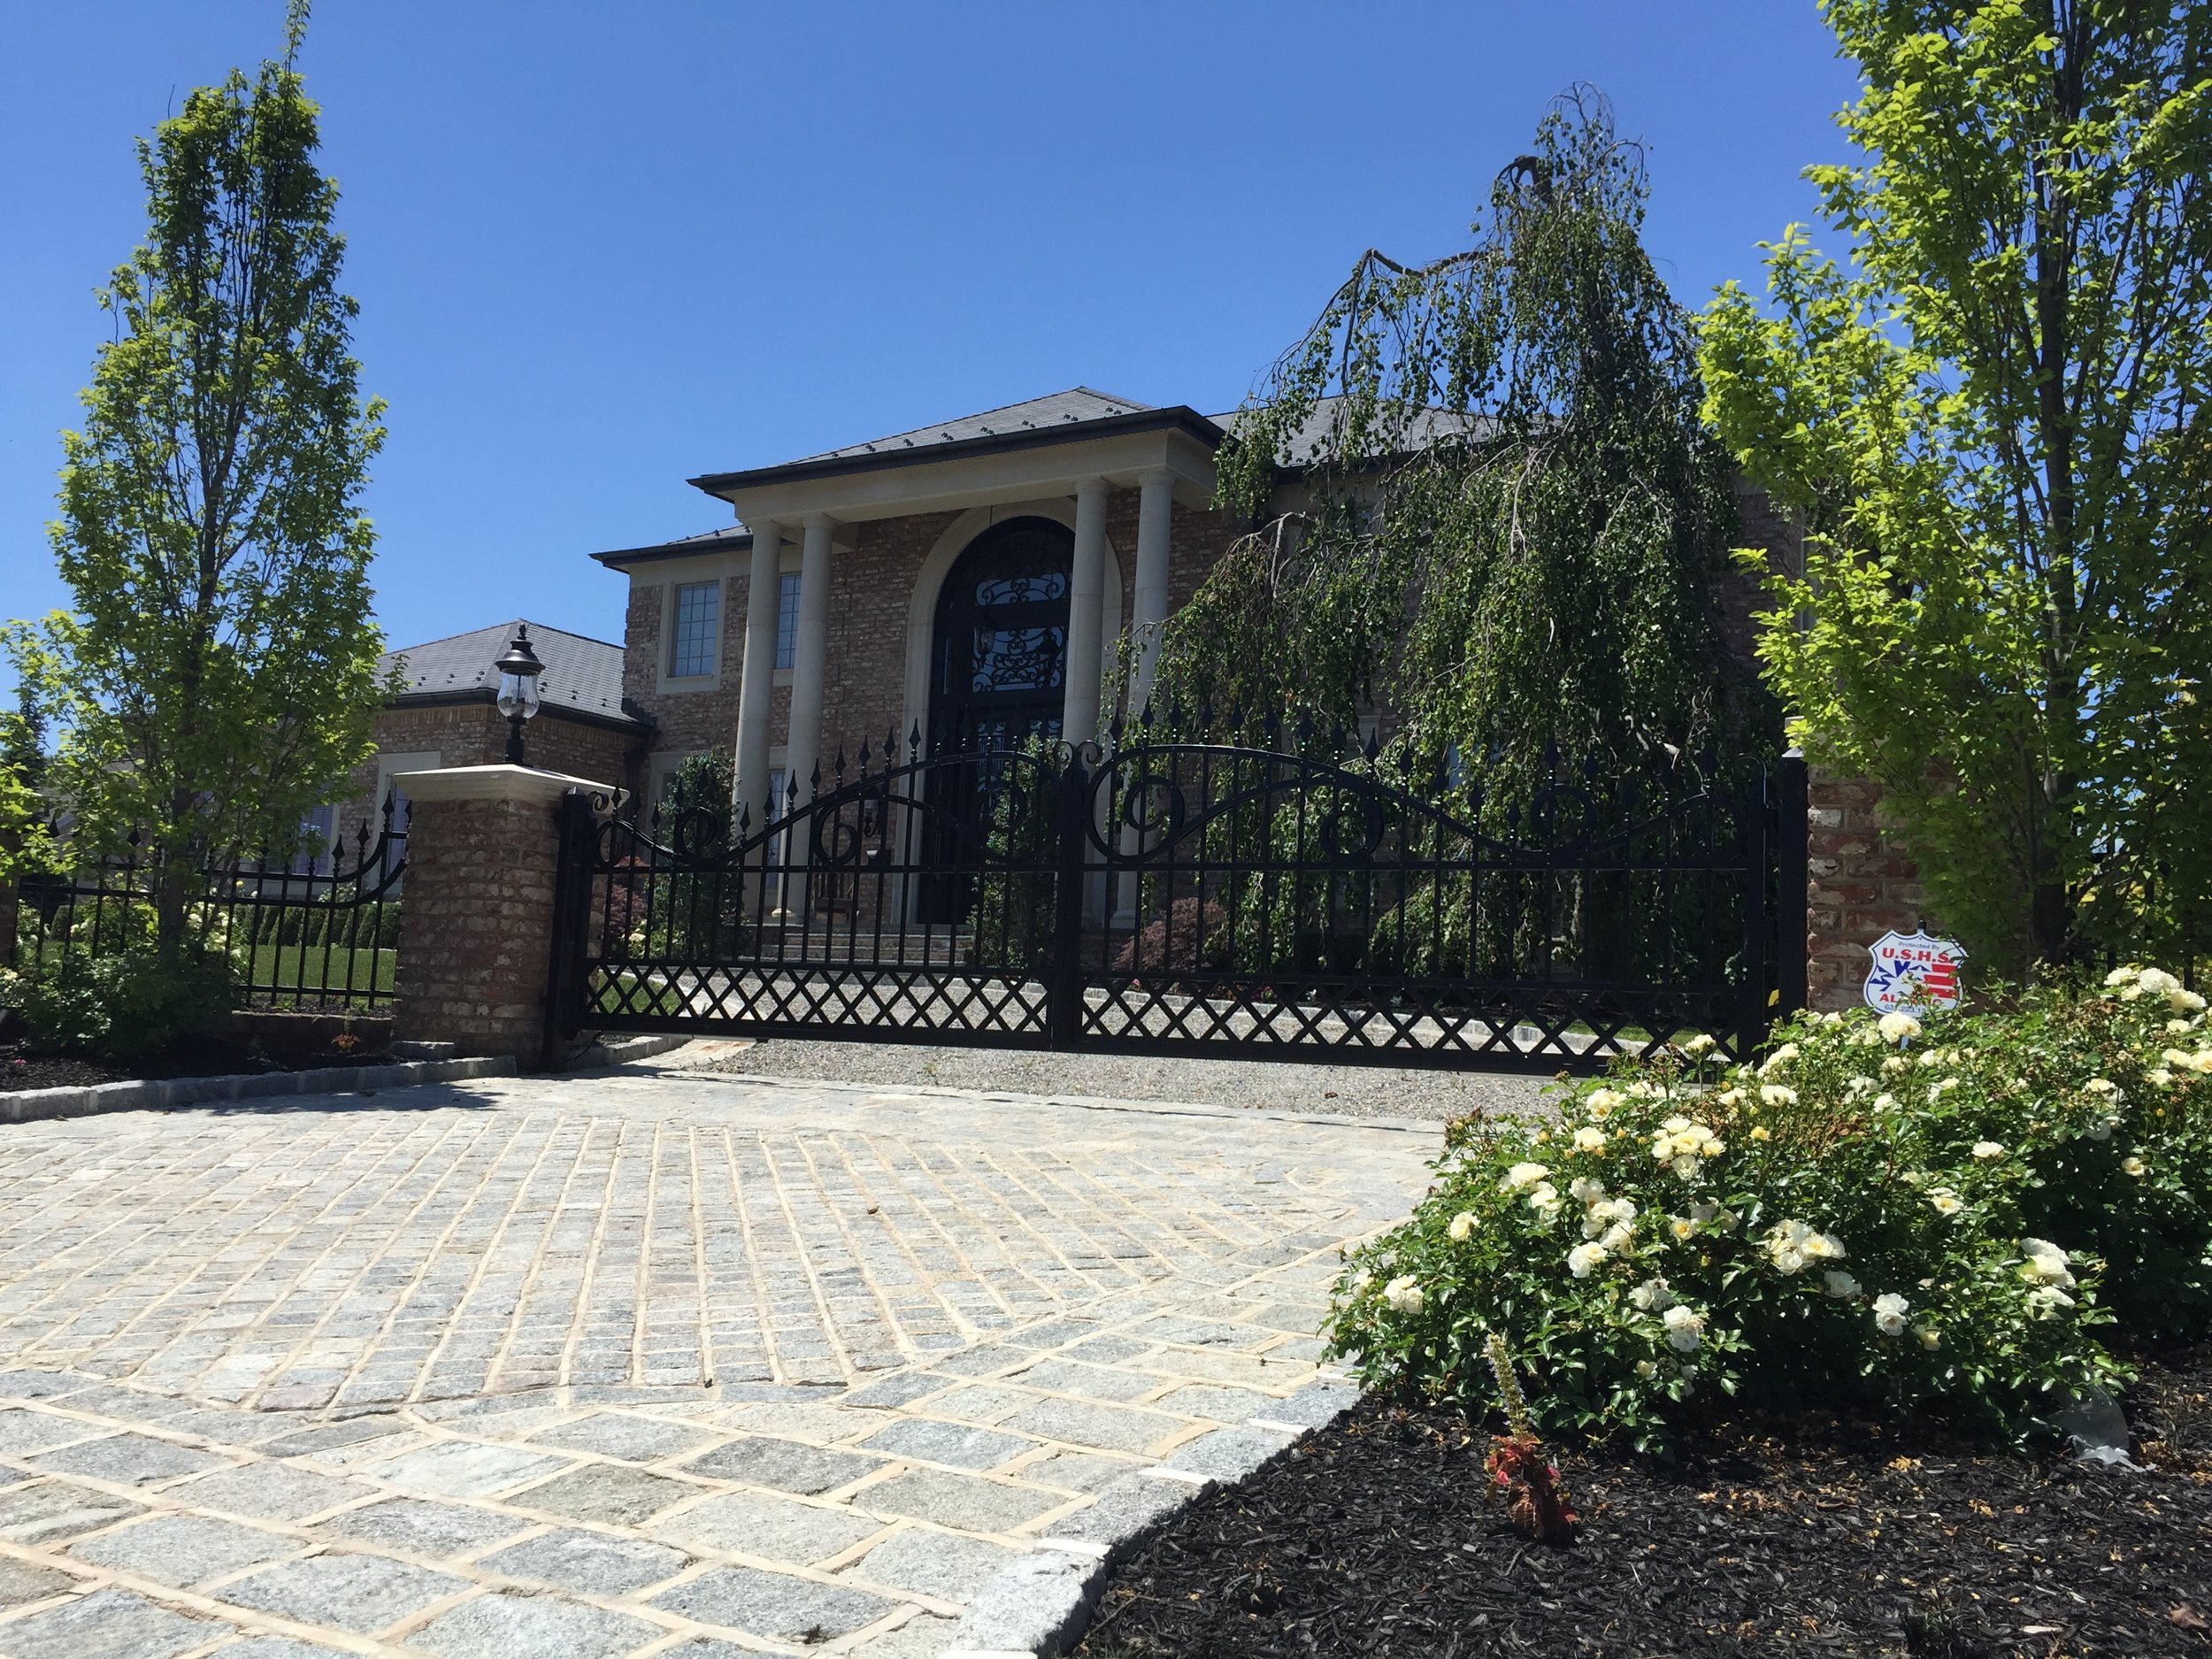 Top driveway design company in Long Island, NY